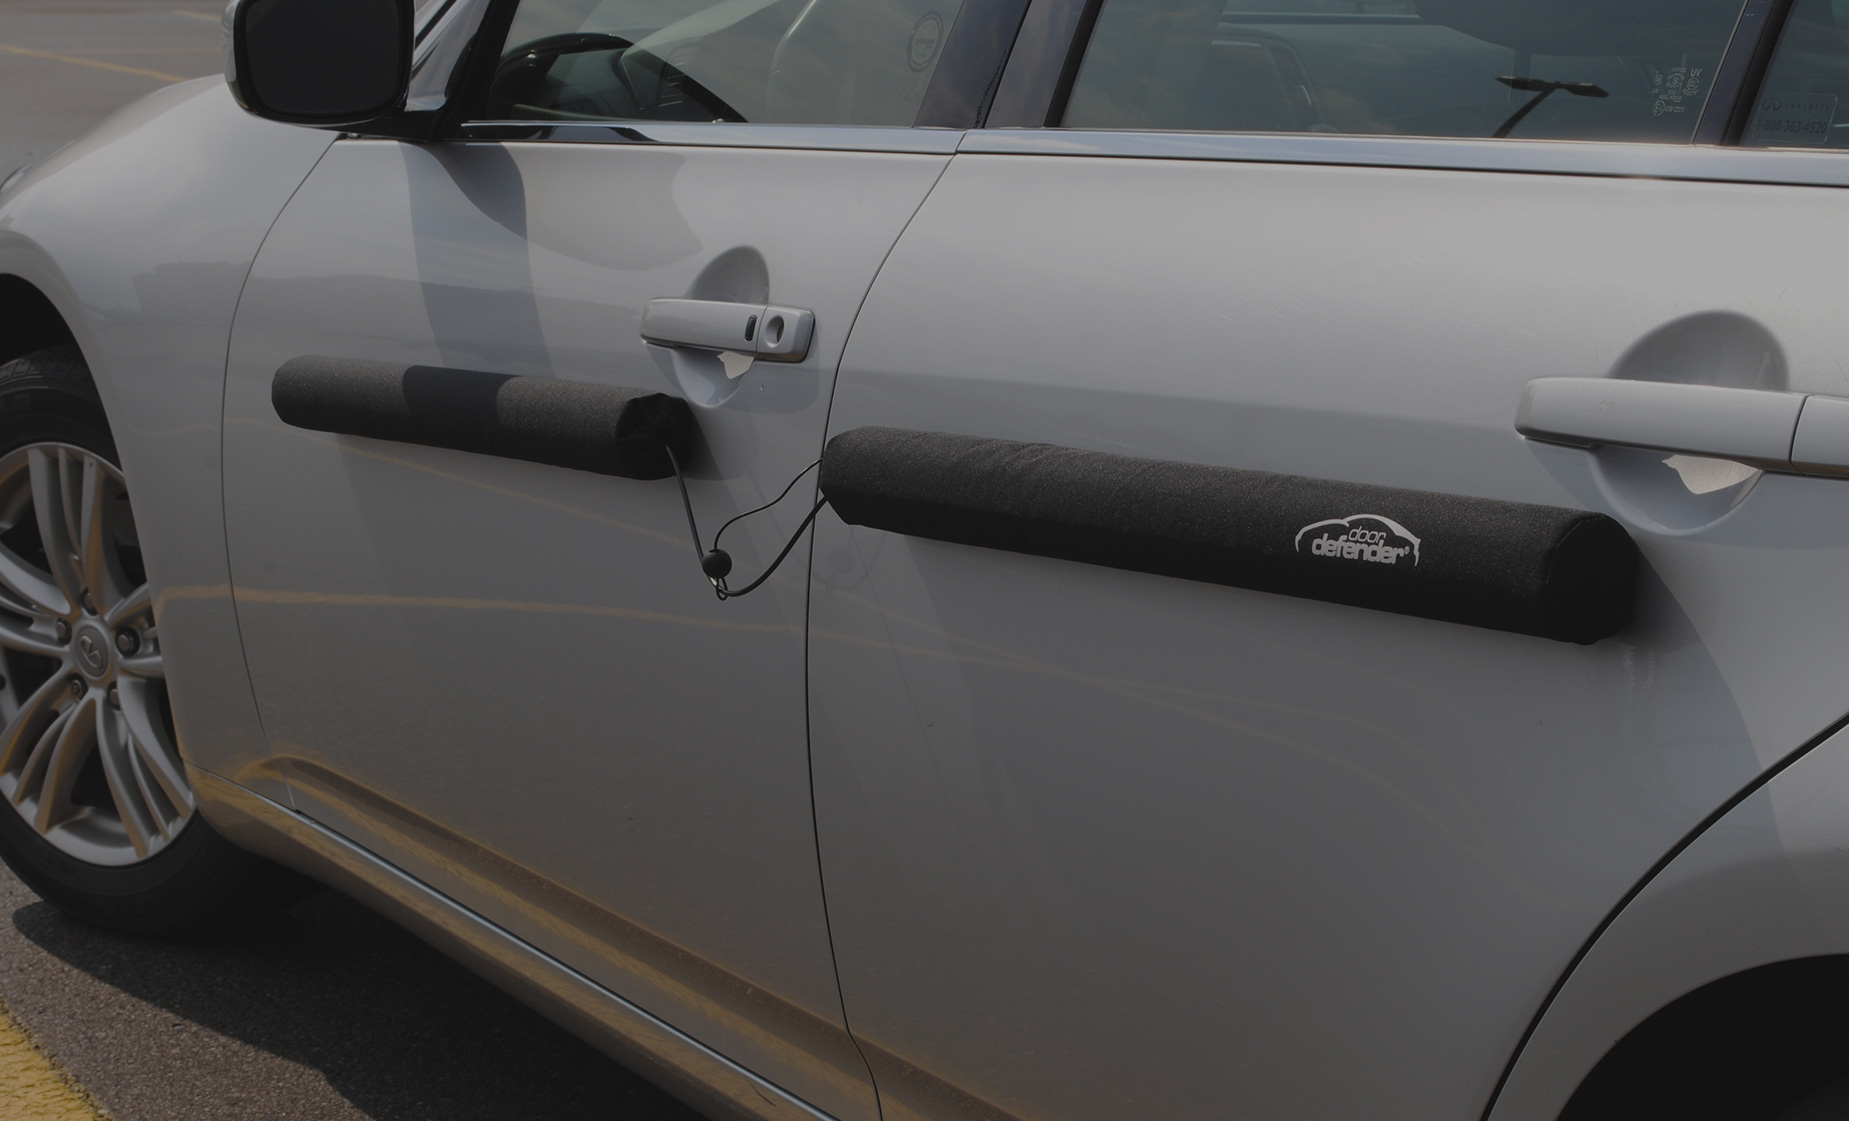 Driven To Protect & Doordefender | Protects your vehicle doors when you park.